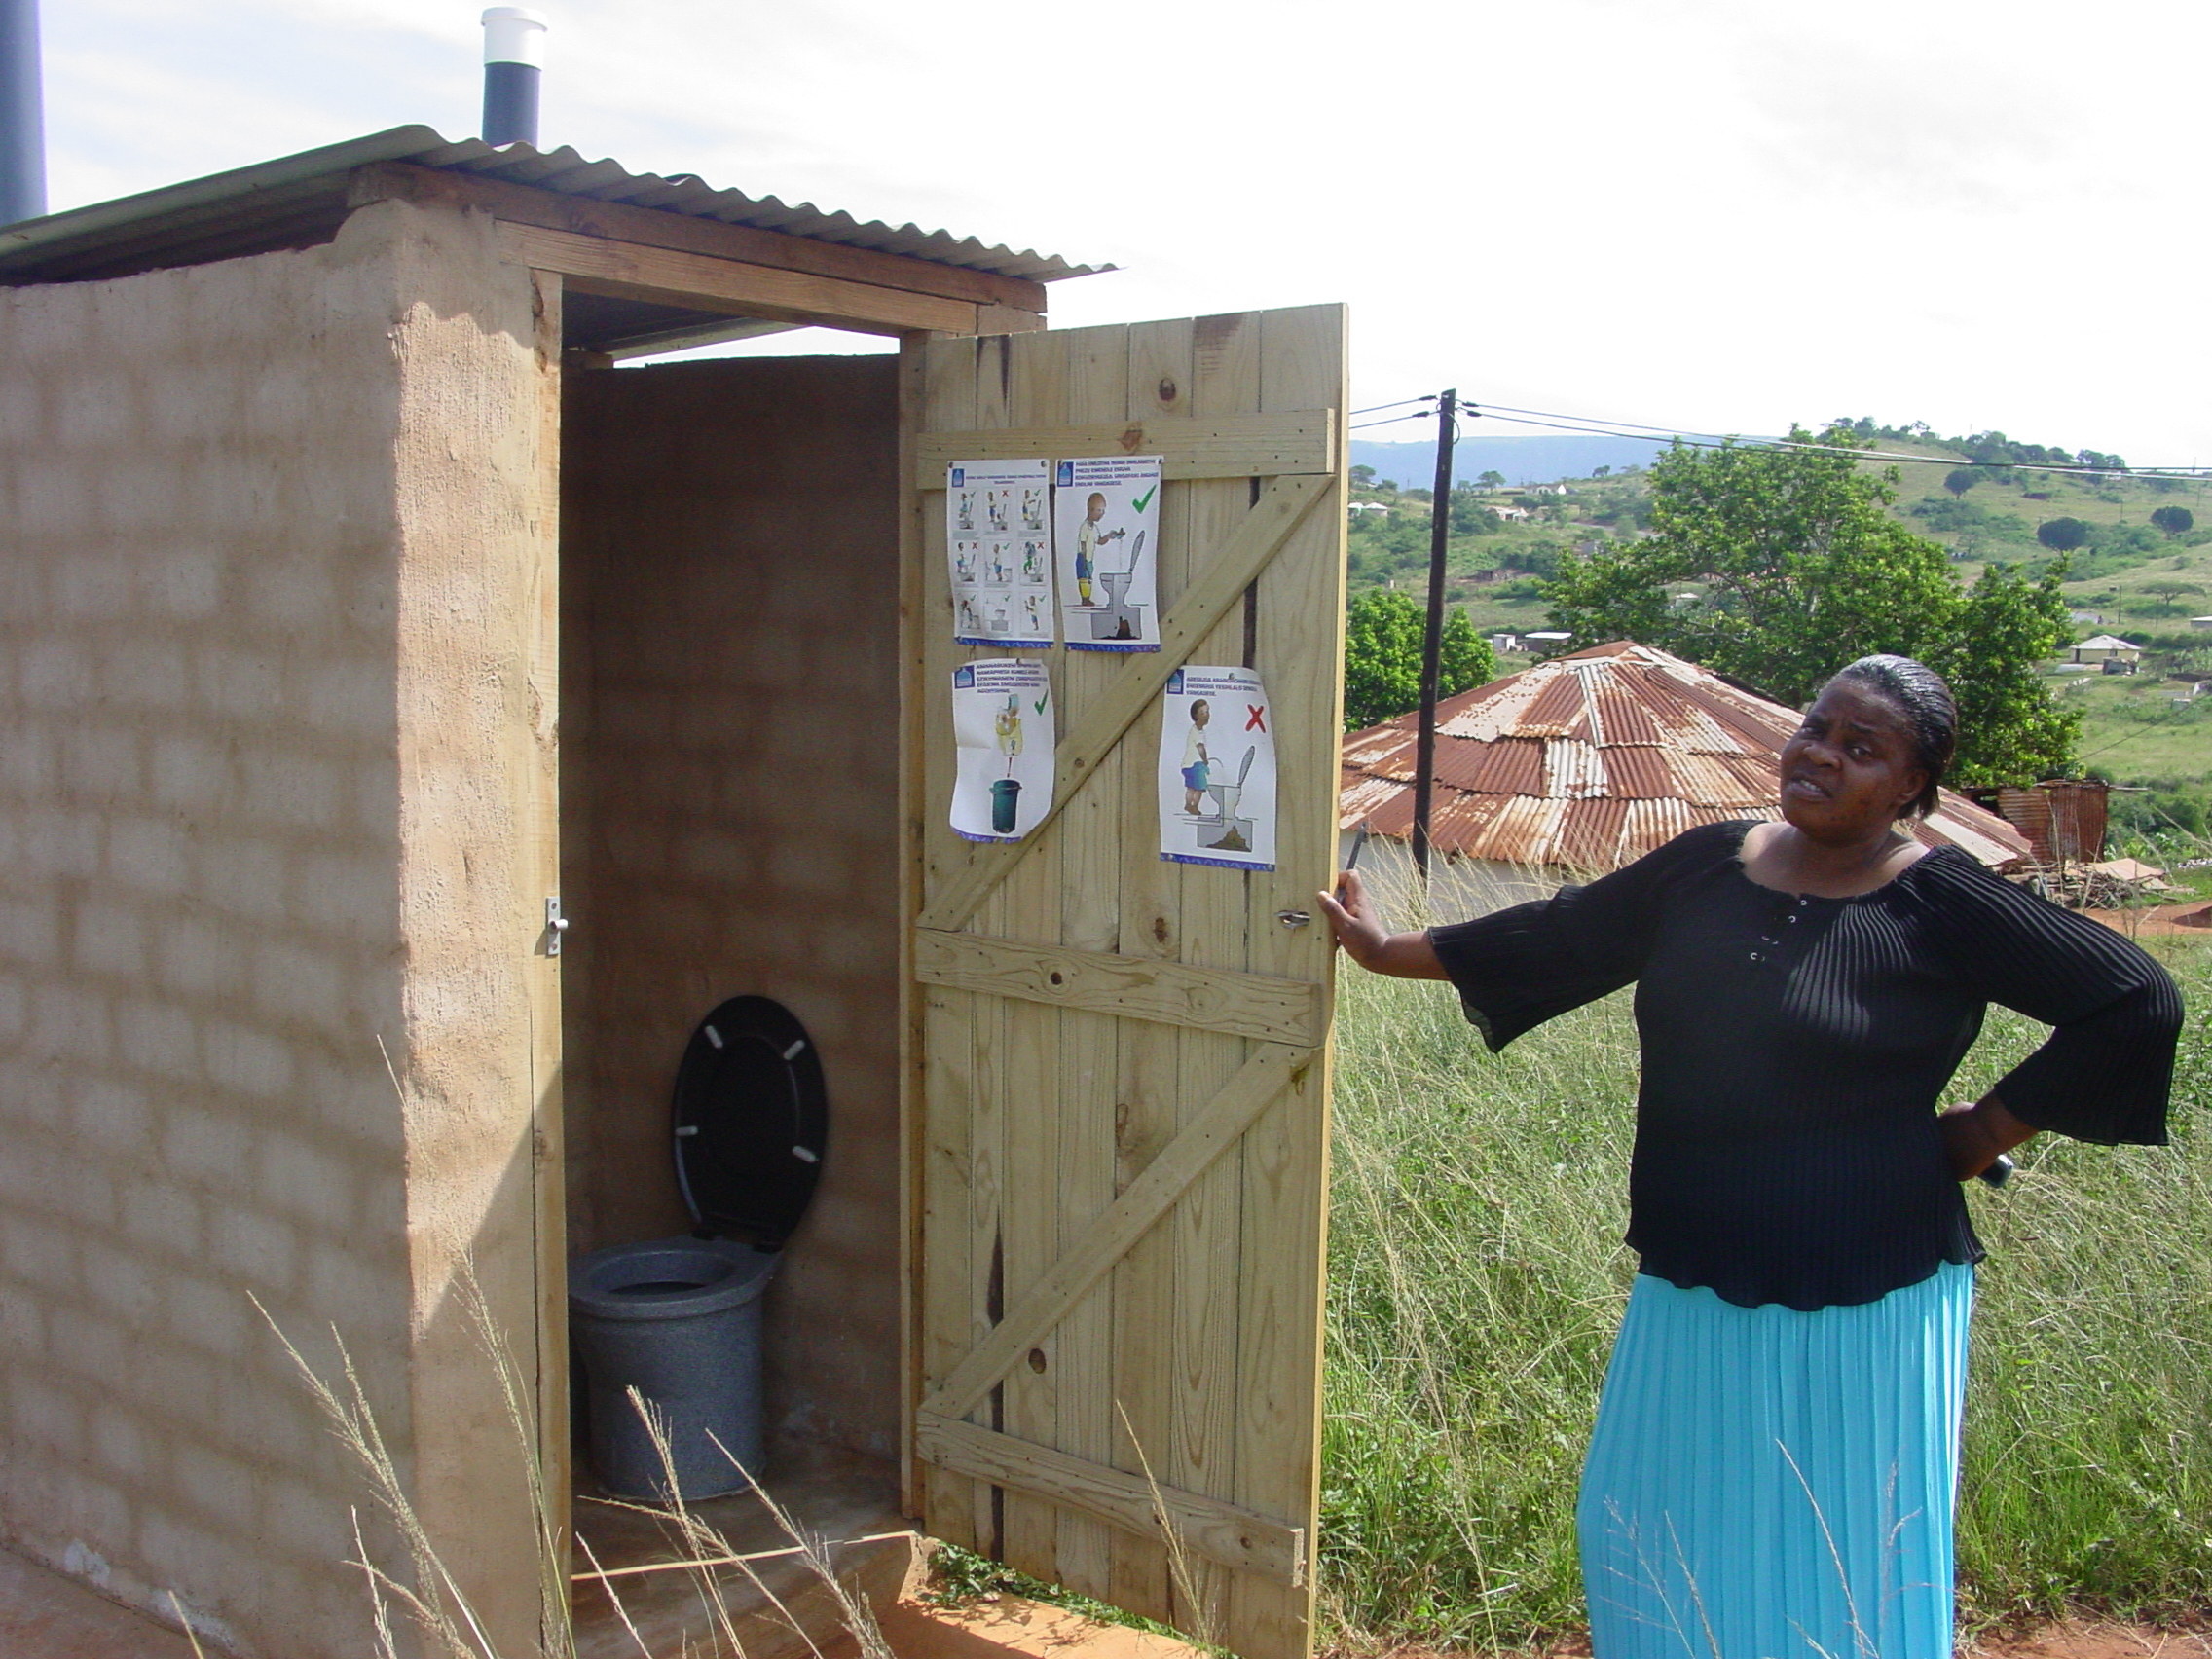 Outside non-flushing toilet still used widely in Africa so must go outside when waking at night to use the toilet